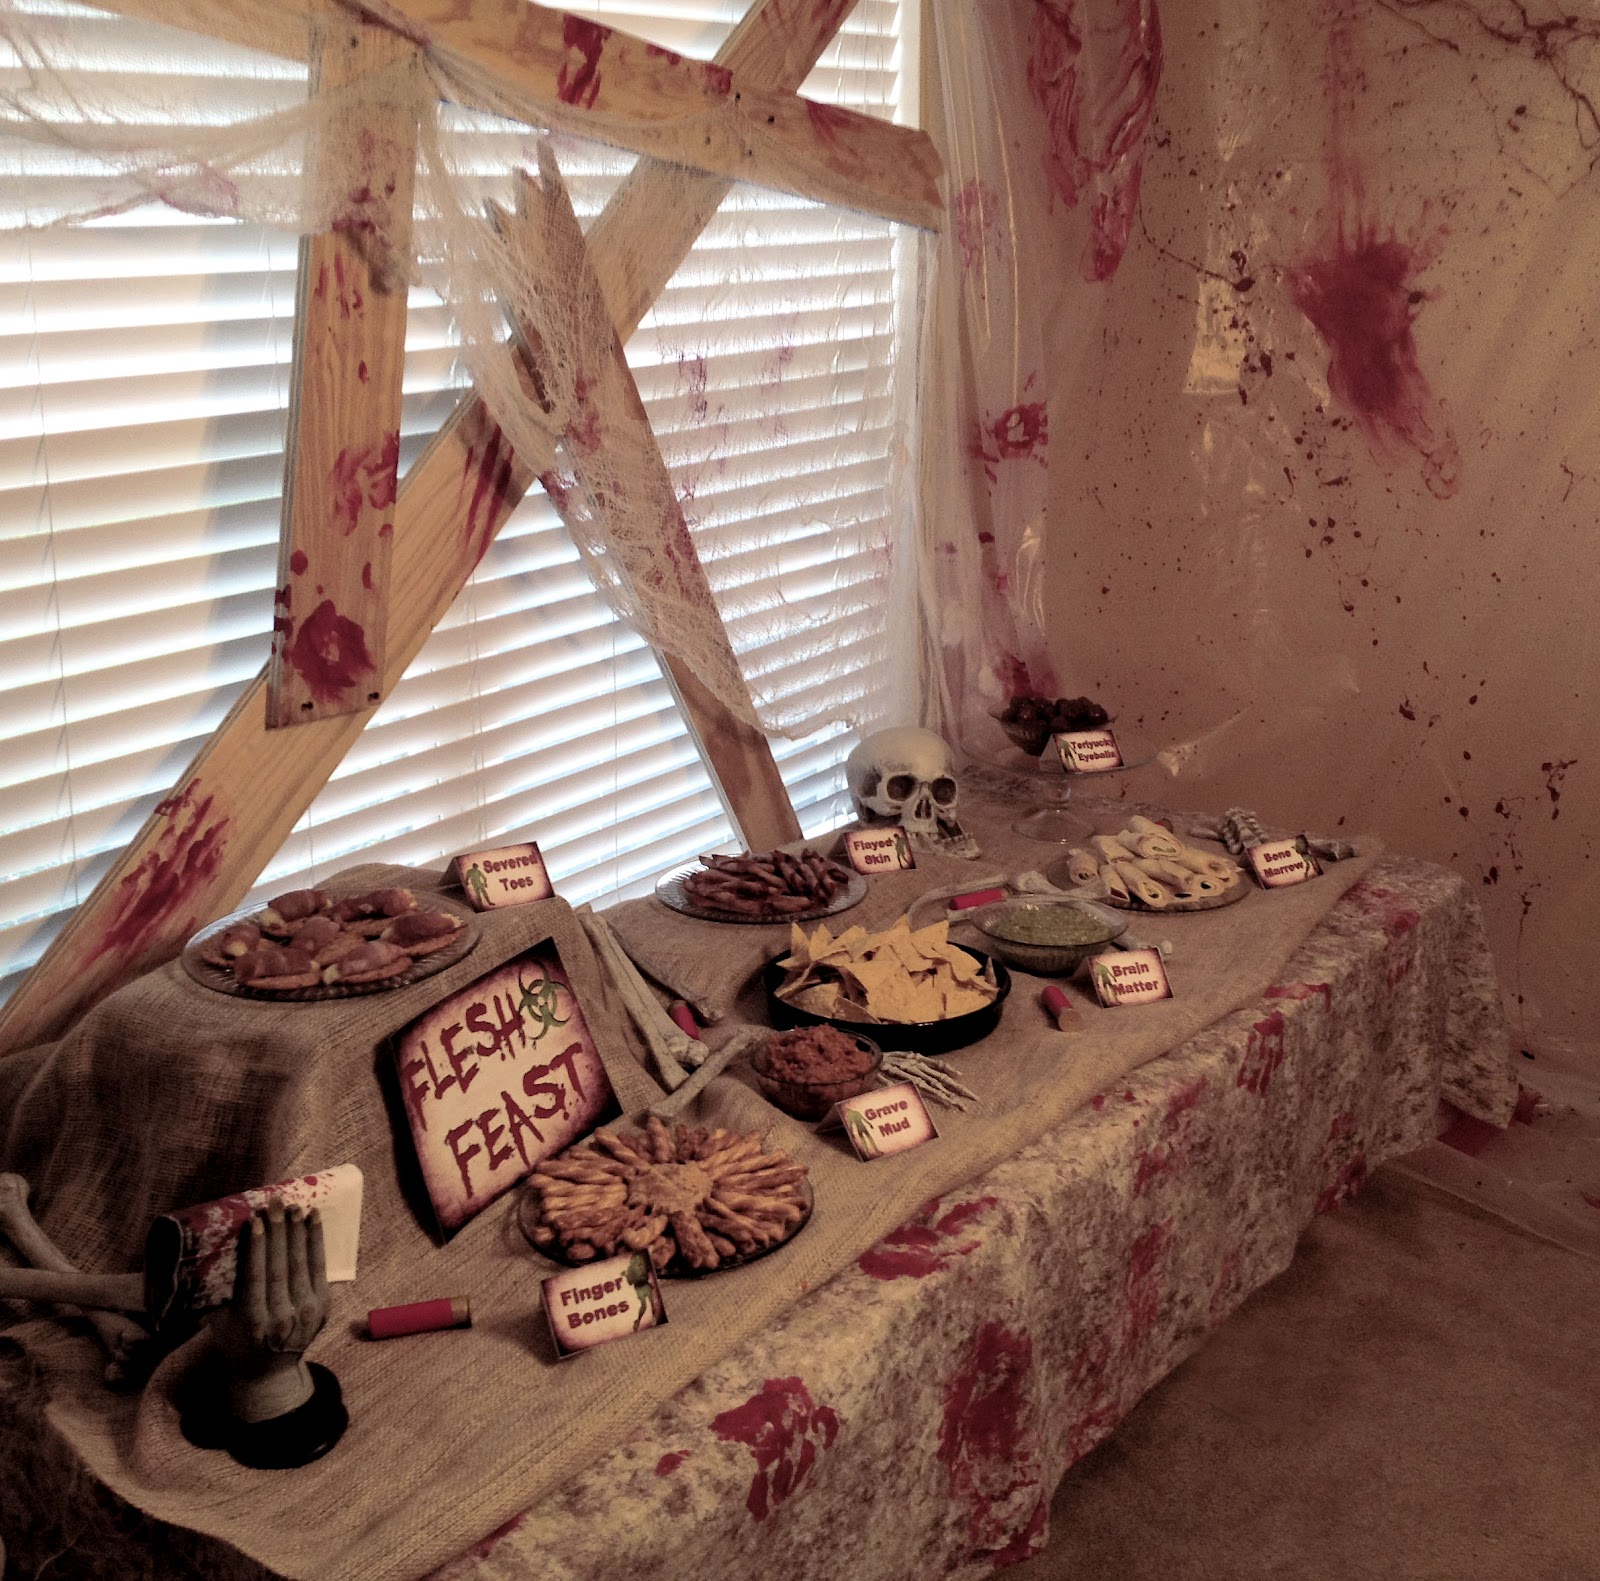 Best Real Party Zombie Apocalypse – A Well Crafted Party This Month